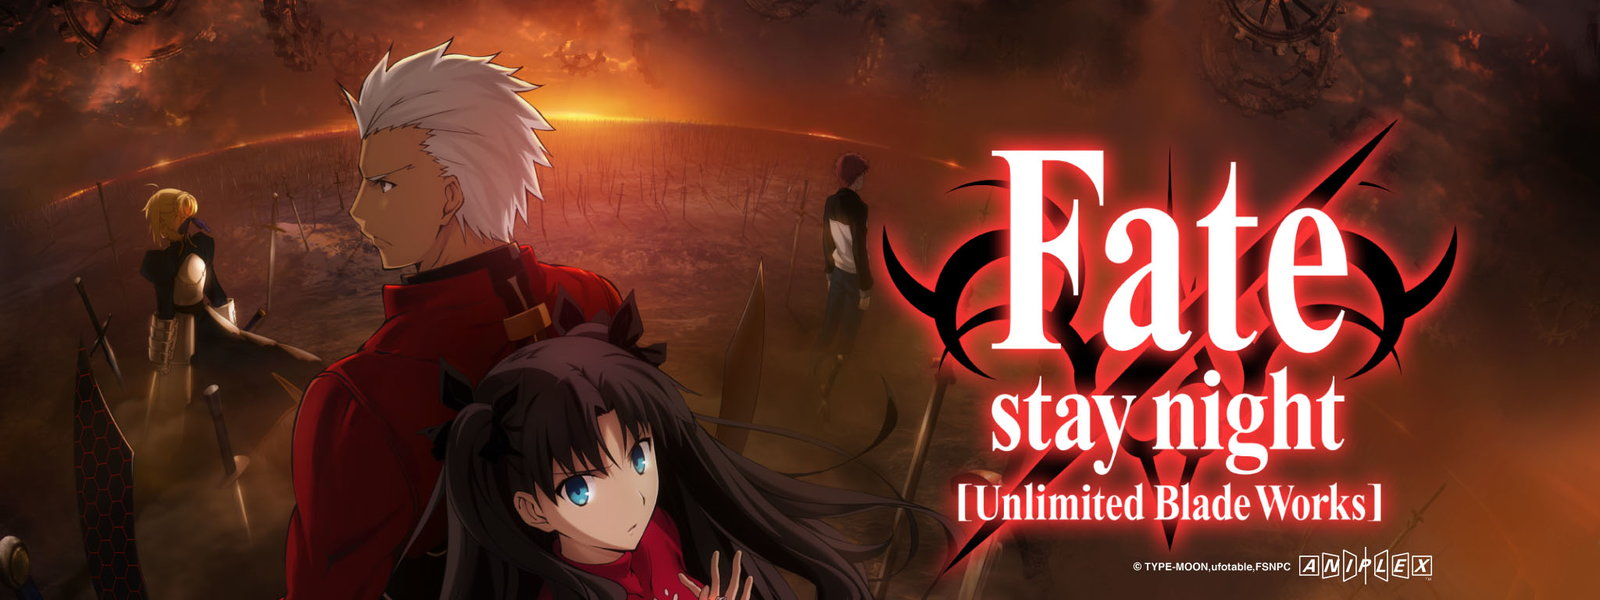 Fate Stay Night Unlimited Blade Works TV Series Checking In Just Before